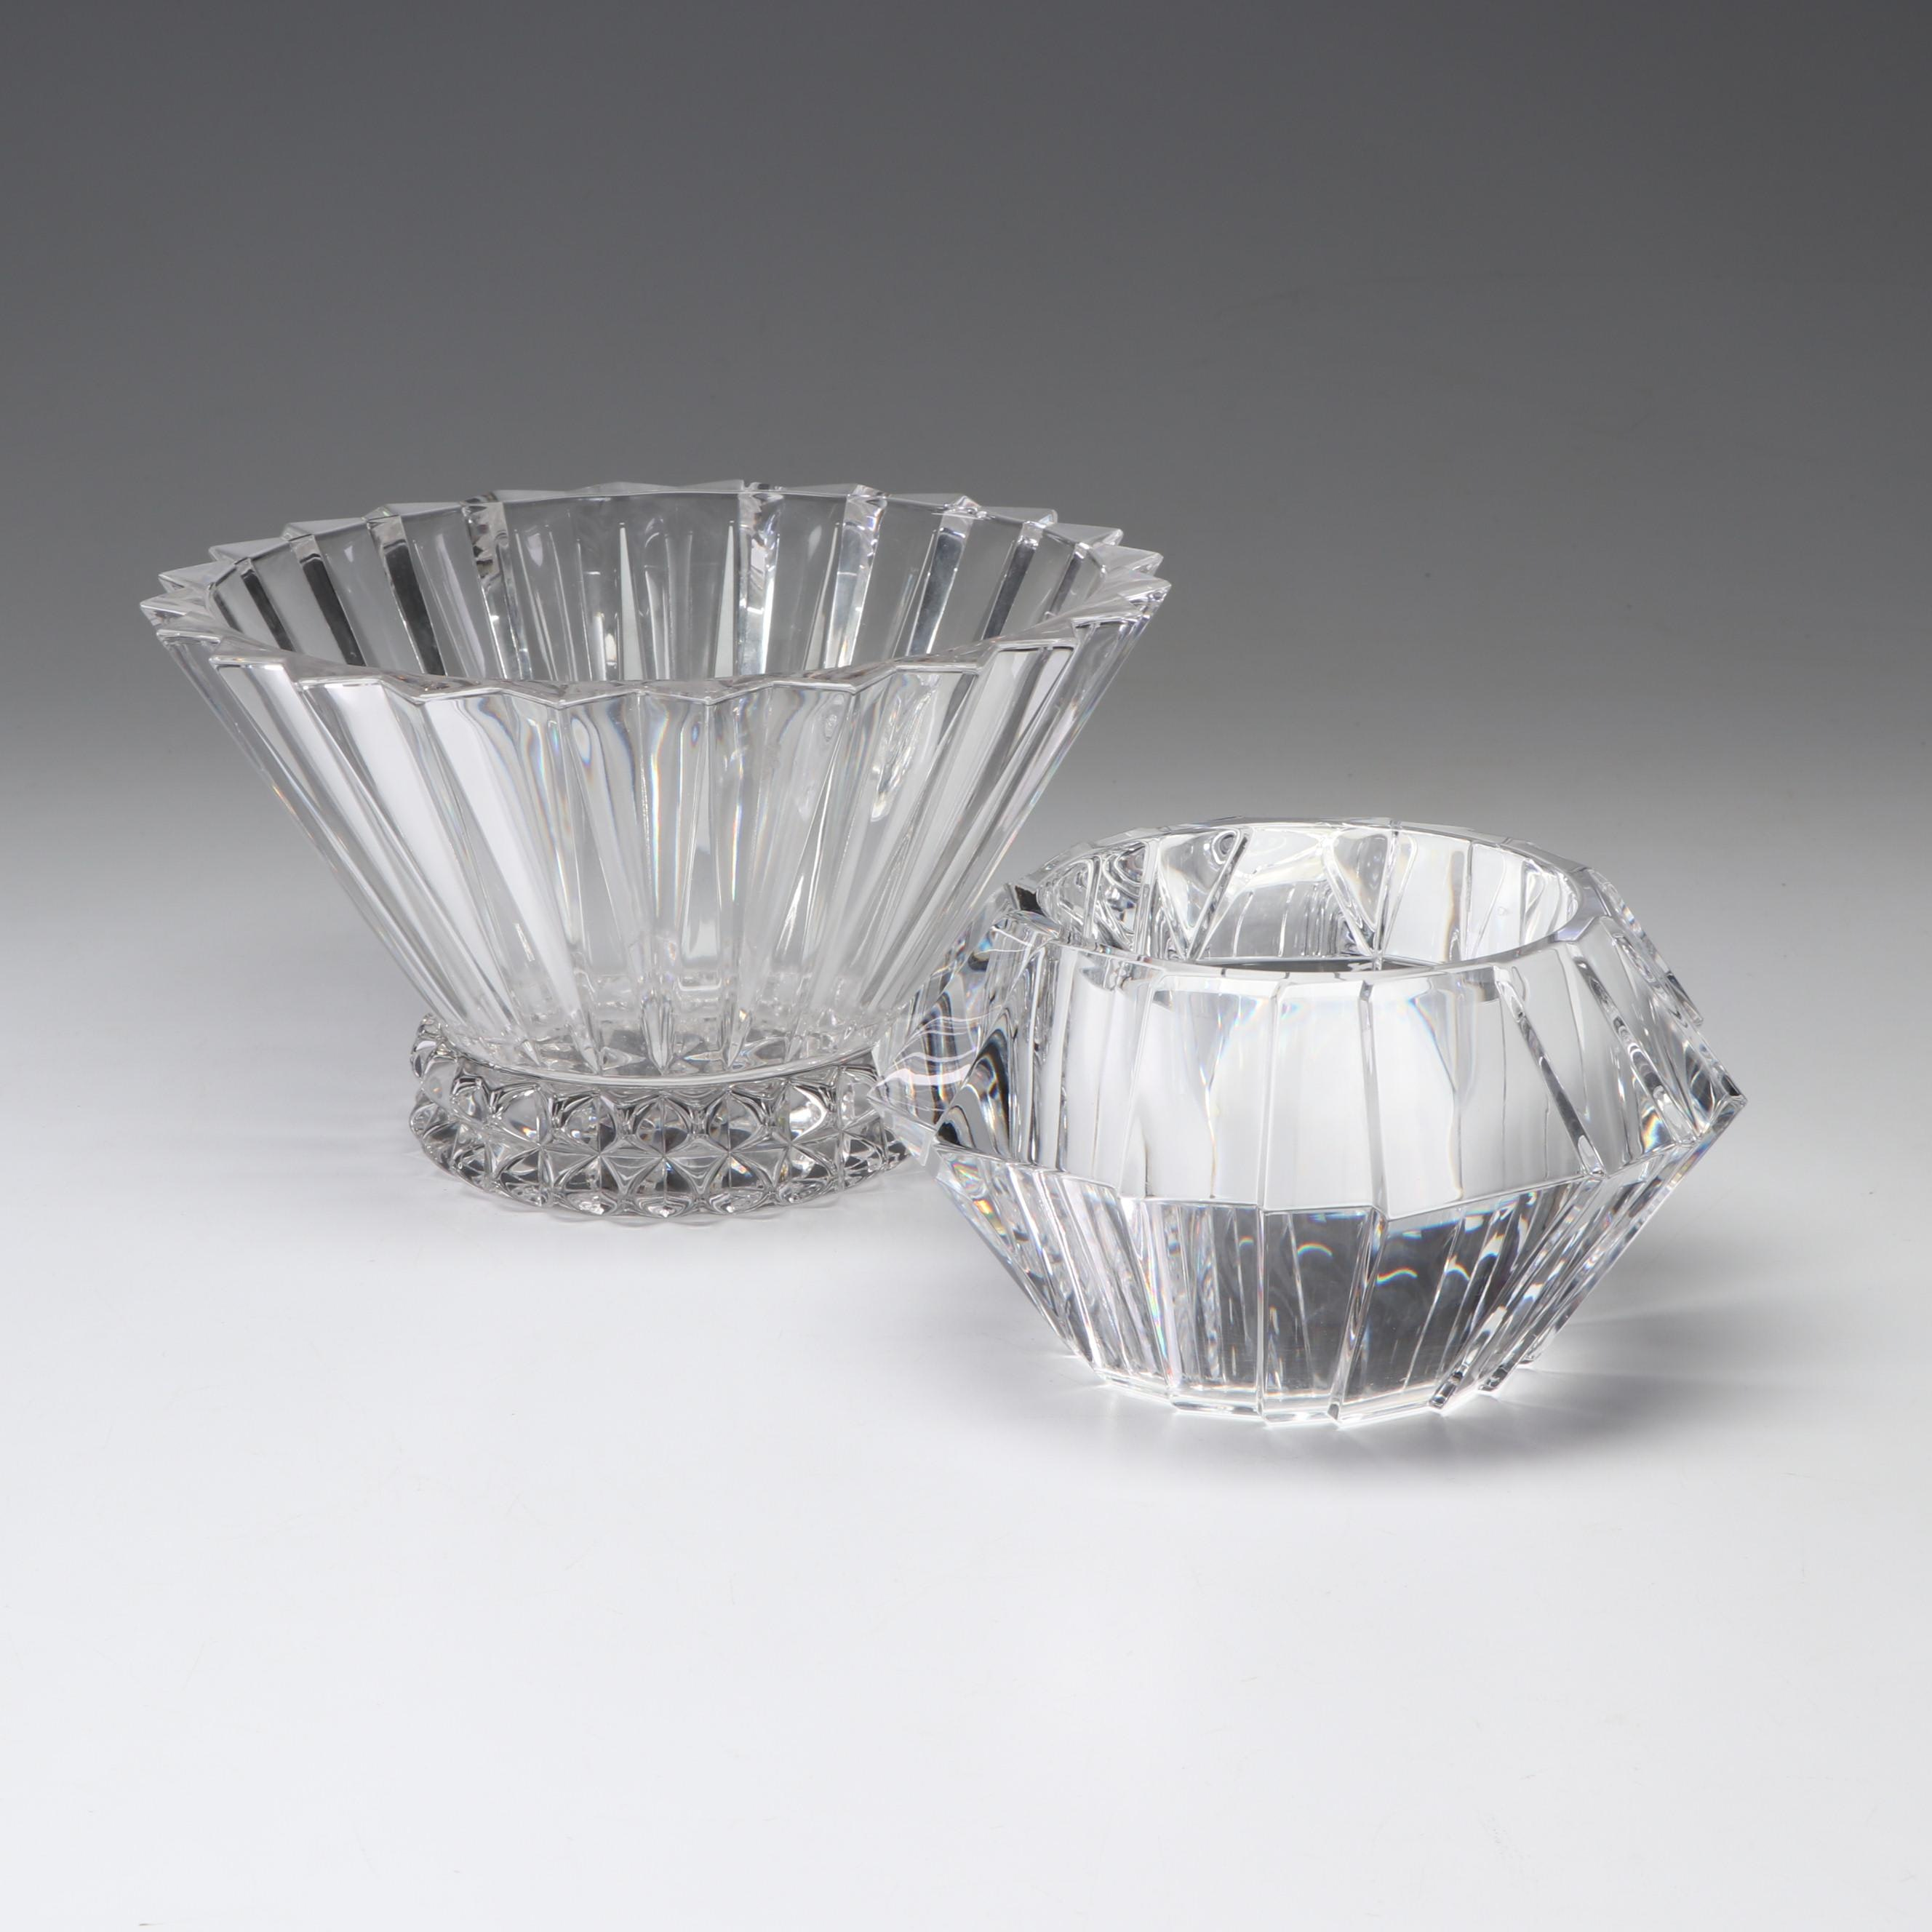 Orrefors and Rosenthal Crystal Bowls